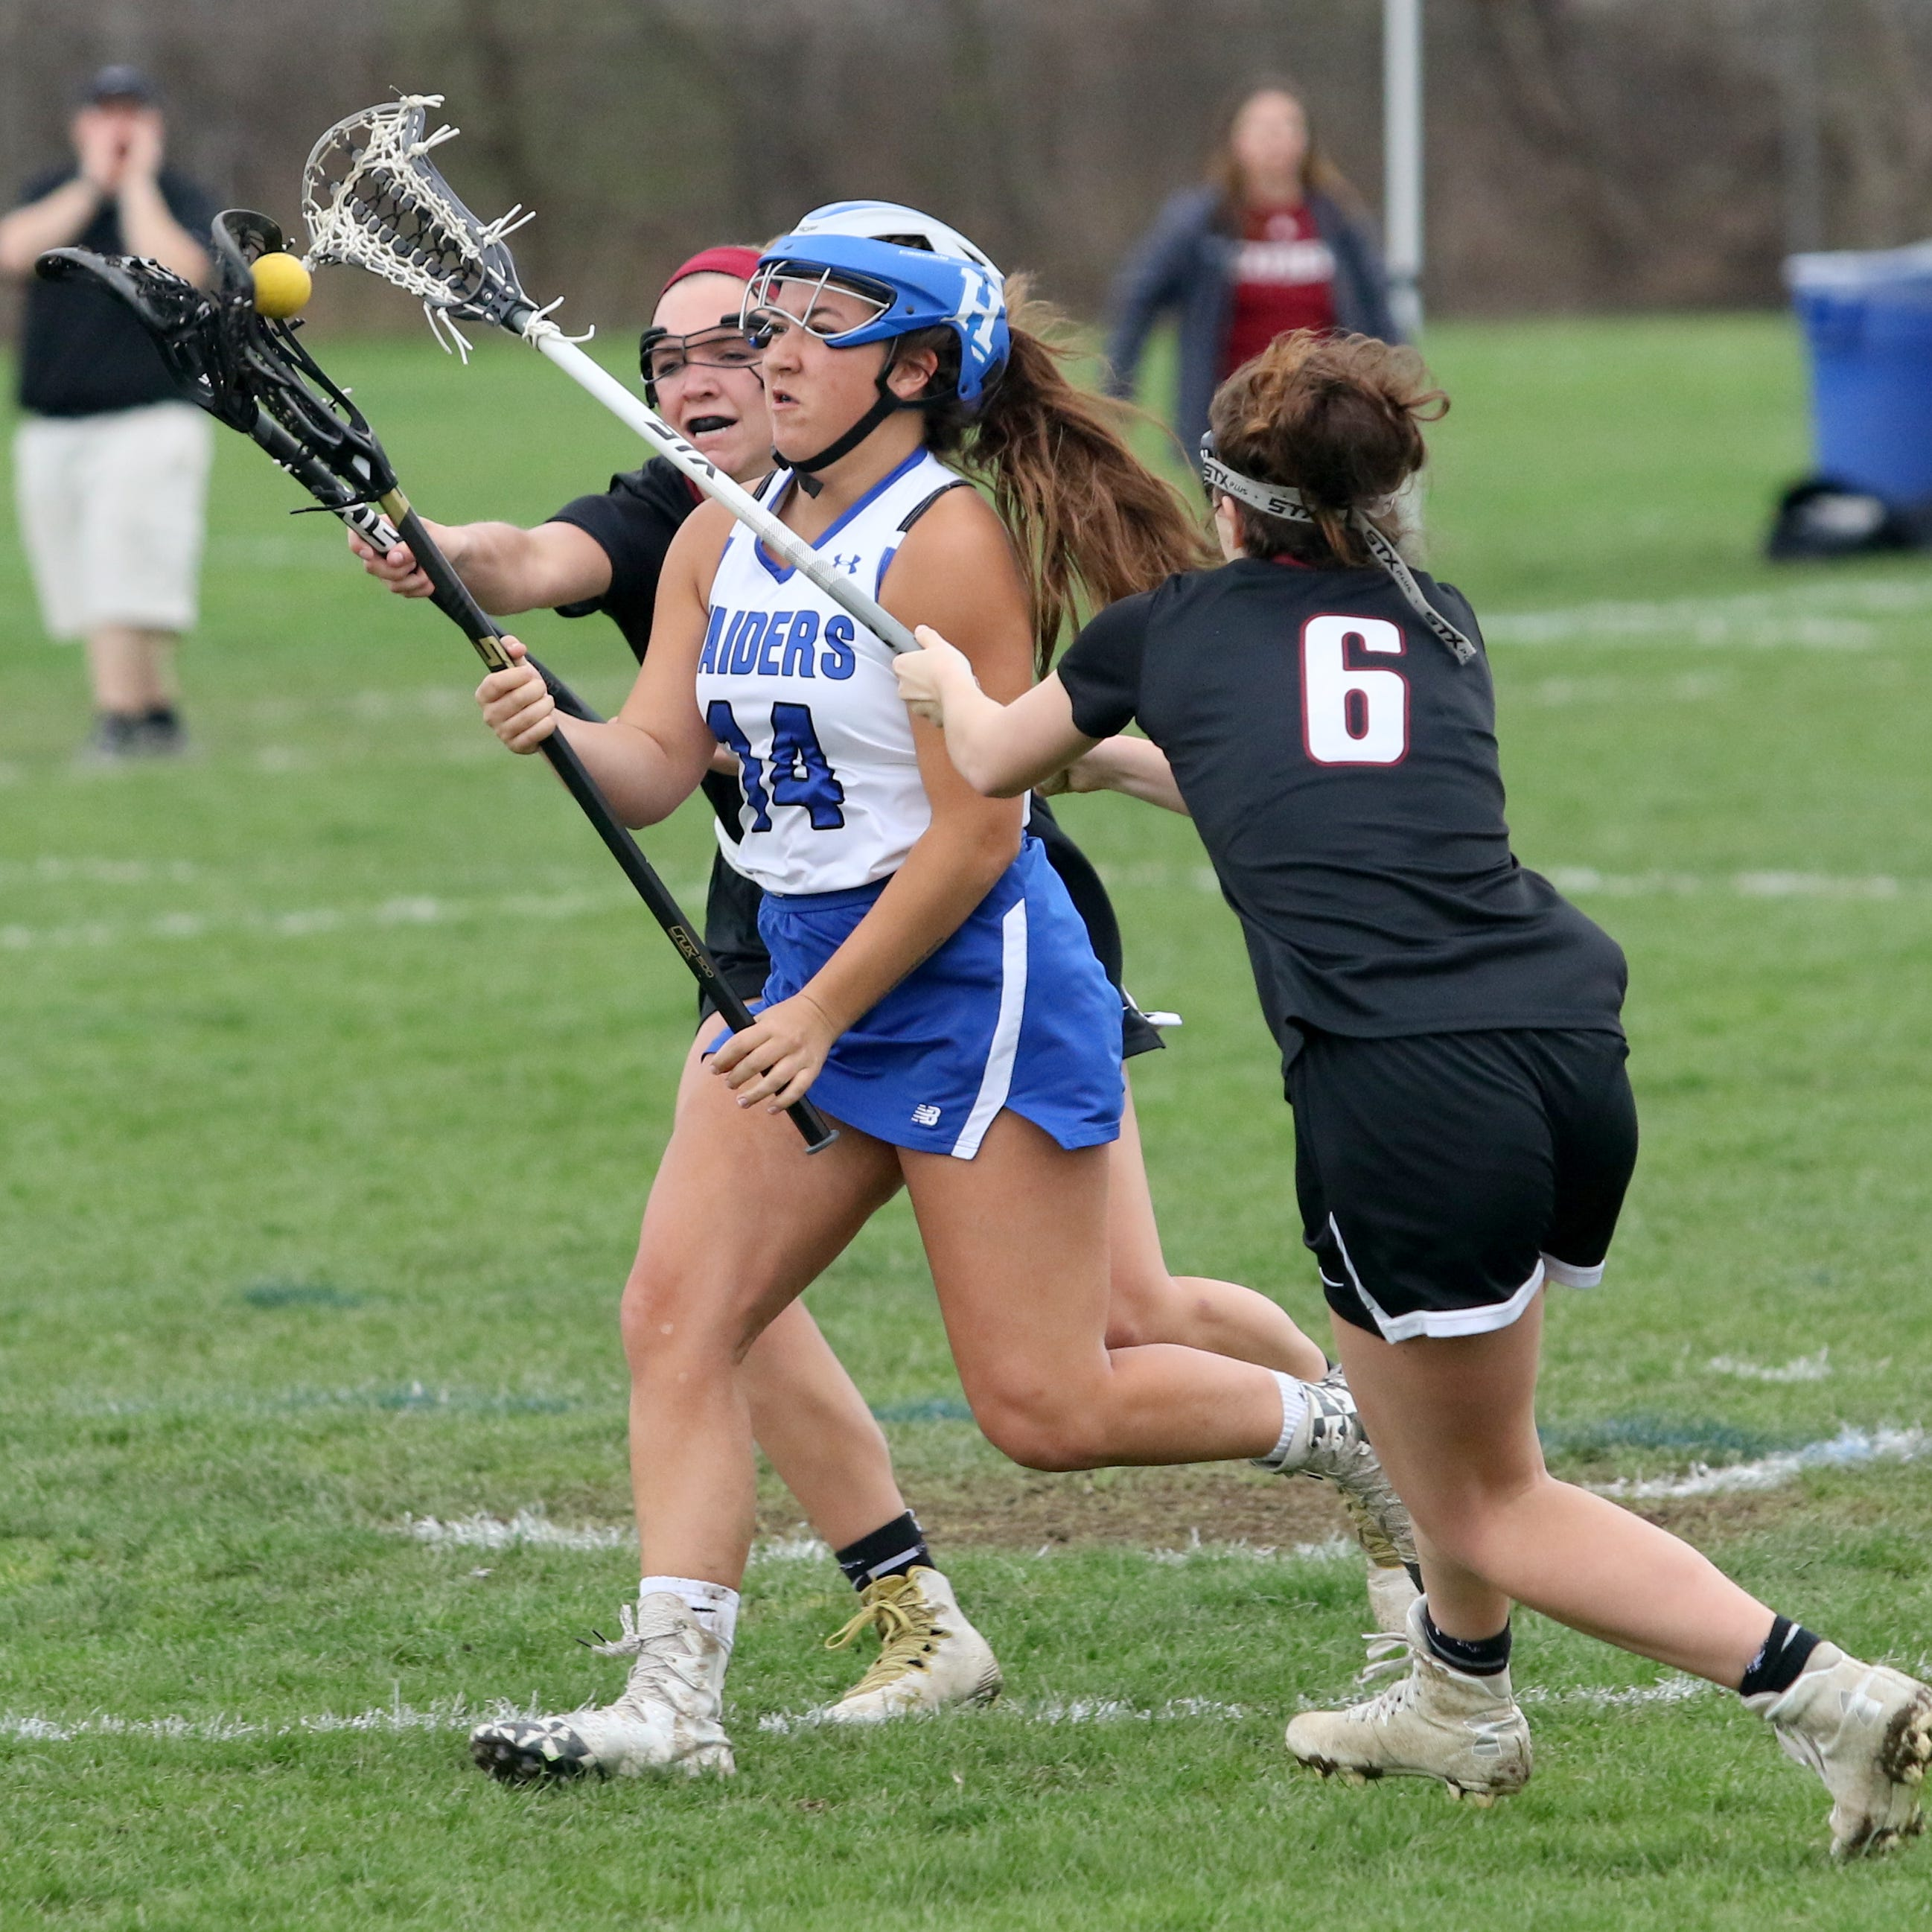 Girls lacrosse: Horseheads offense clicks in victory over Elmira